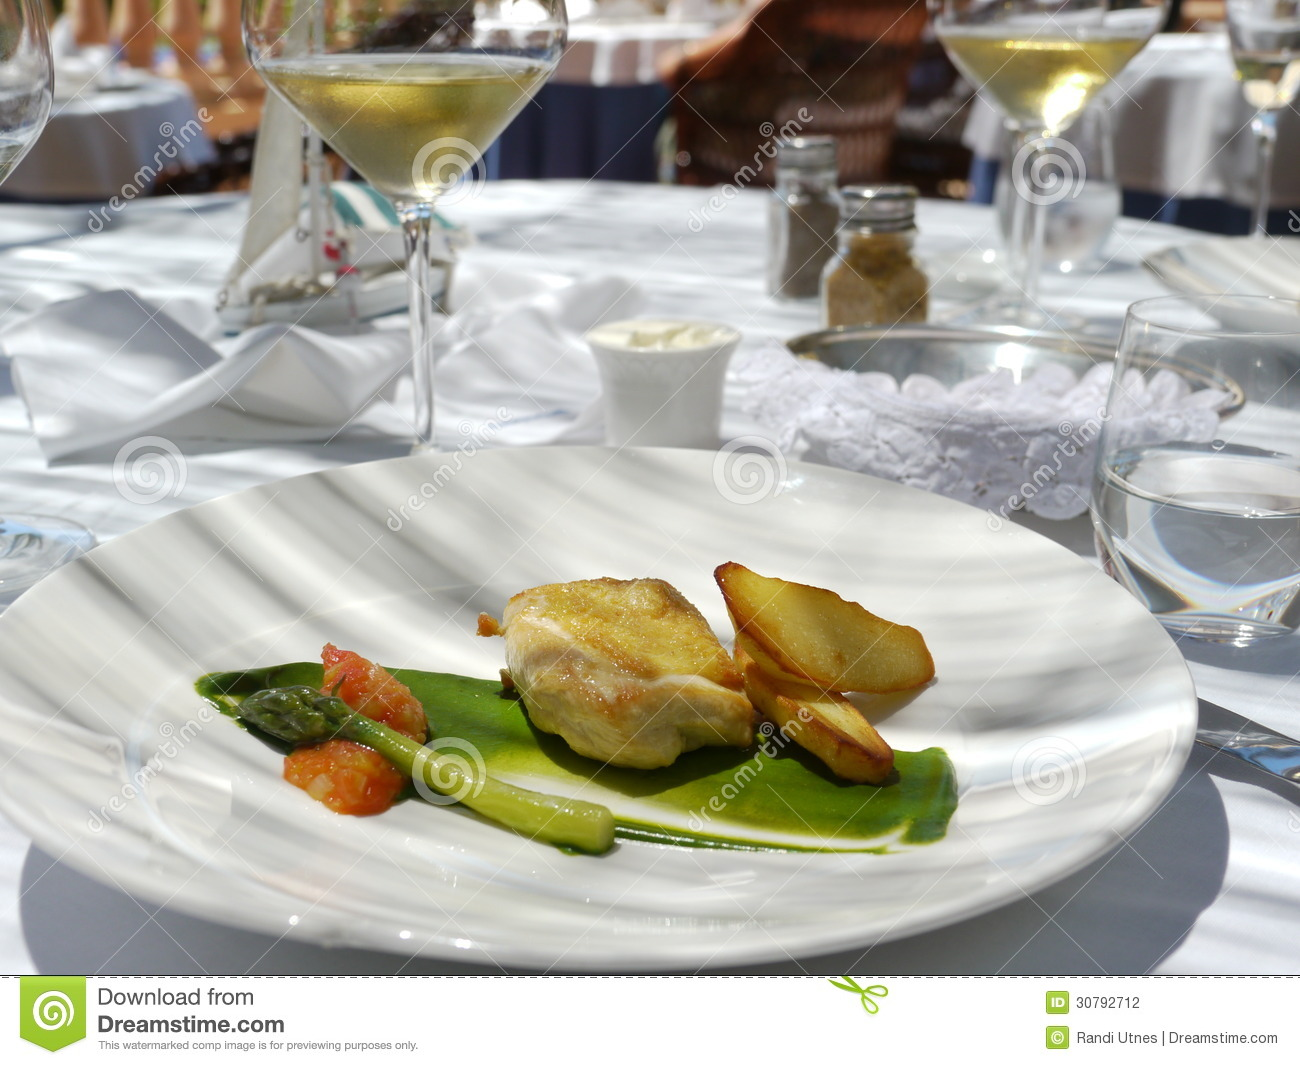 Fancy chicken meal - photo#49